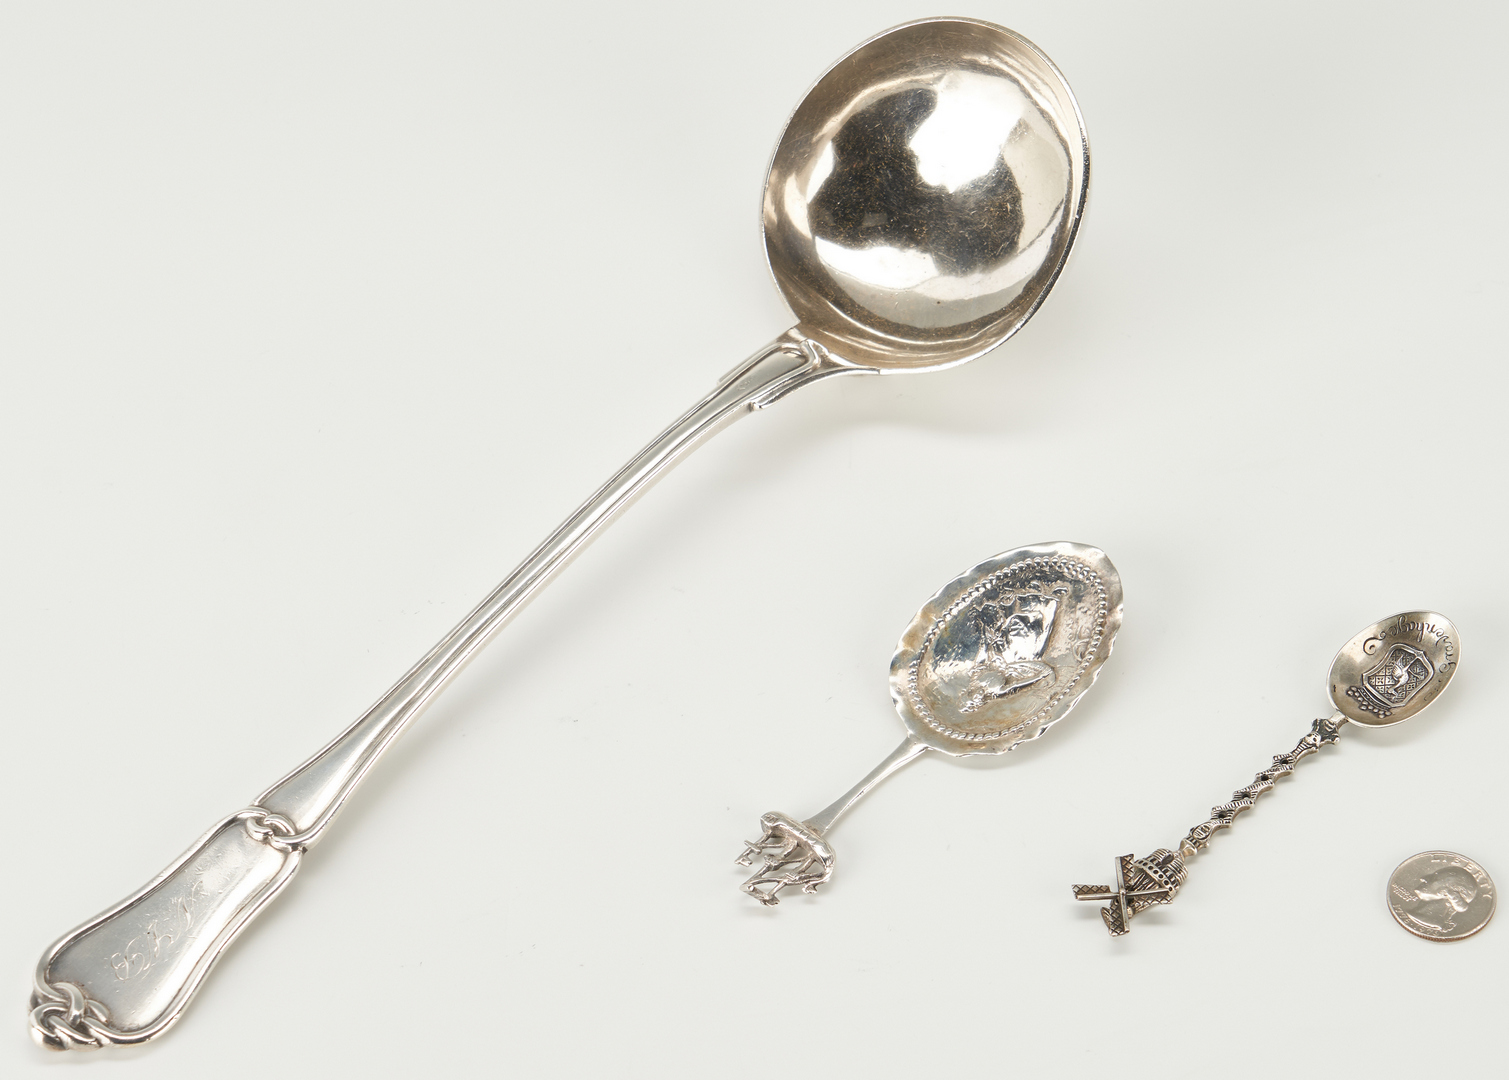 Lot 281: French 1st Standard Silver Lover's Knot Ladle plus 2 Continental Spoons